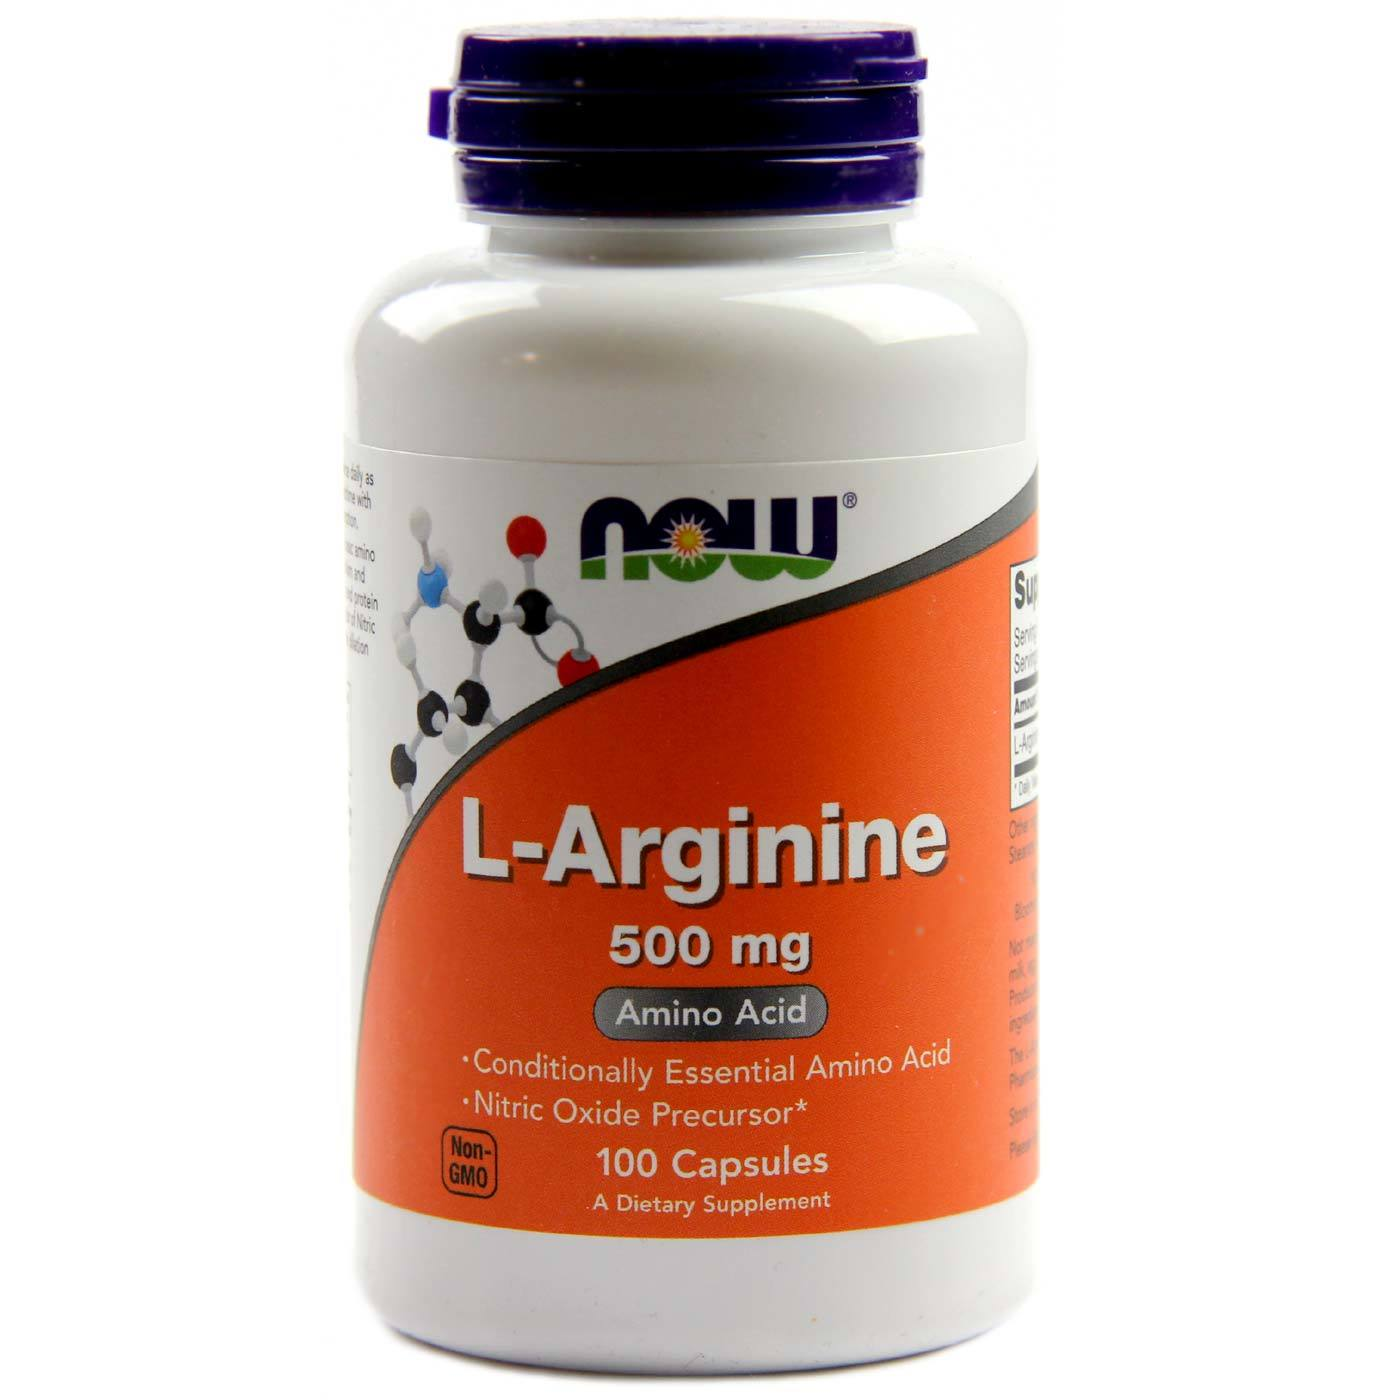 arginine supplement side effects dosage Q Let me first say that your site is a welcome source of information and discussion